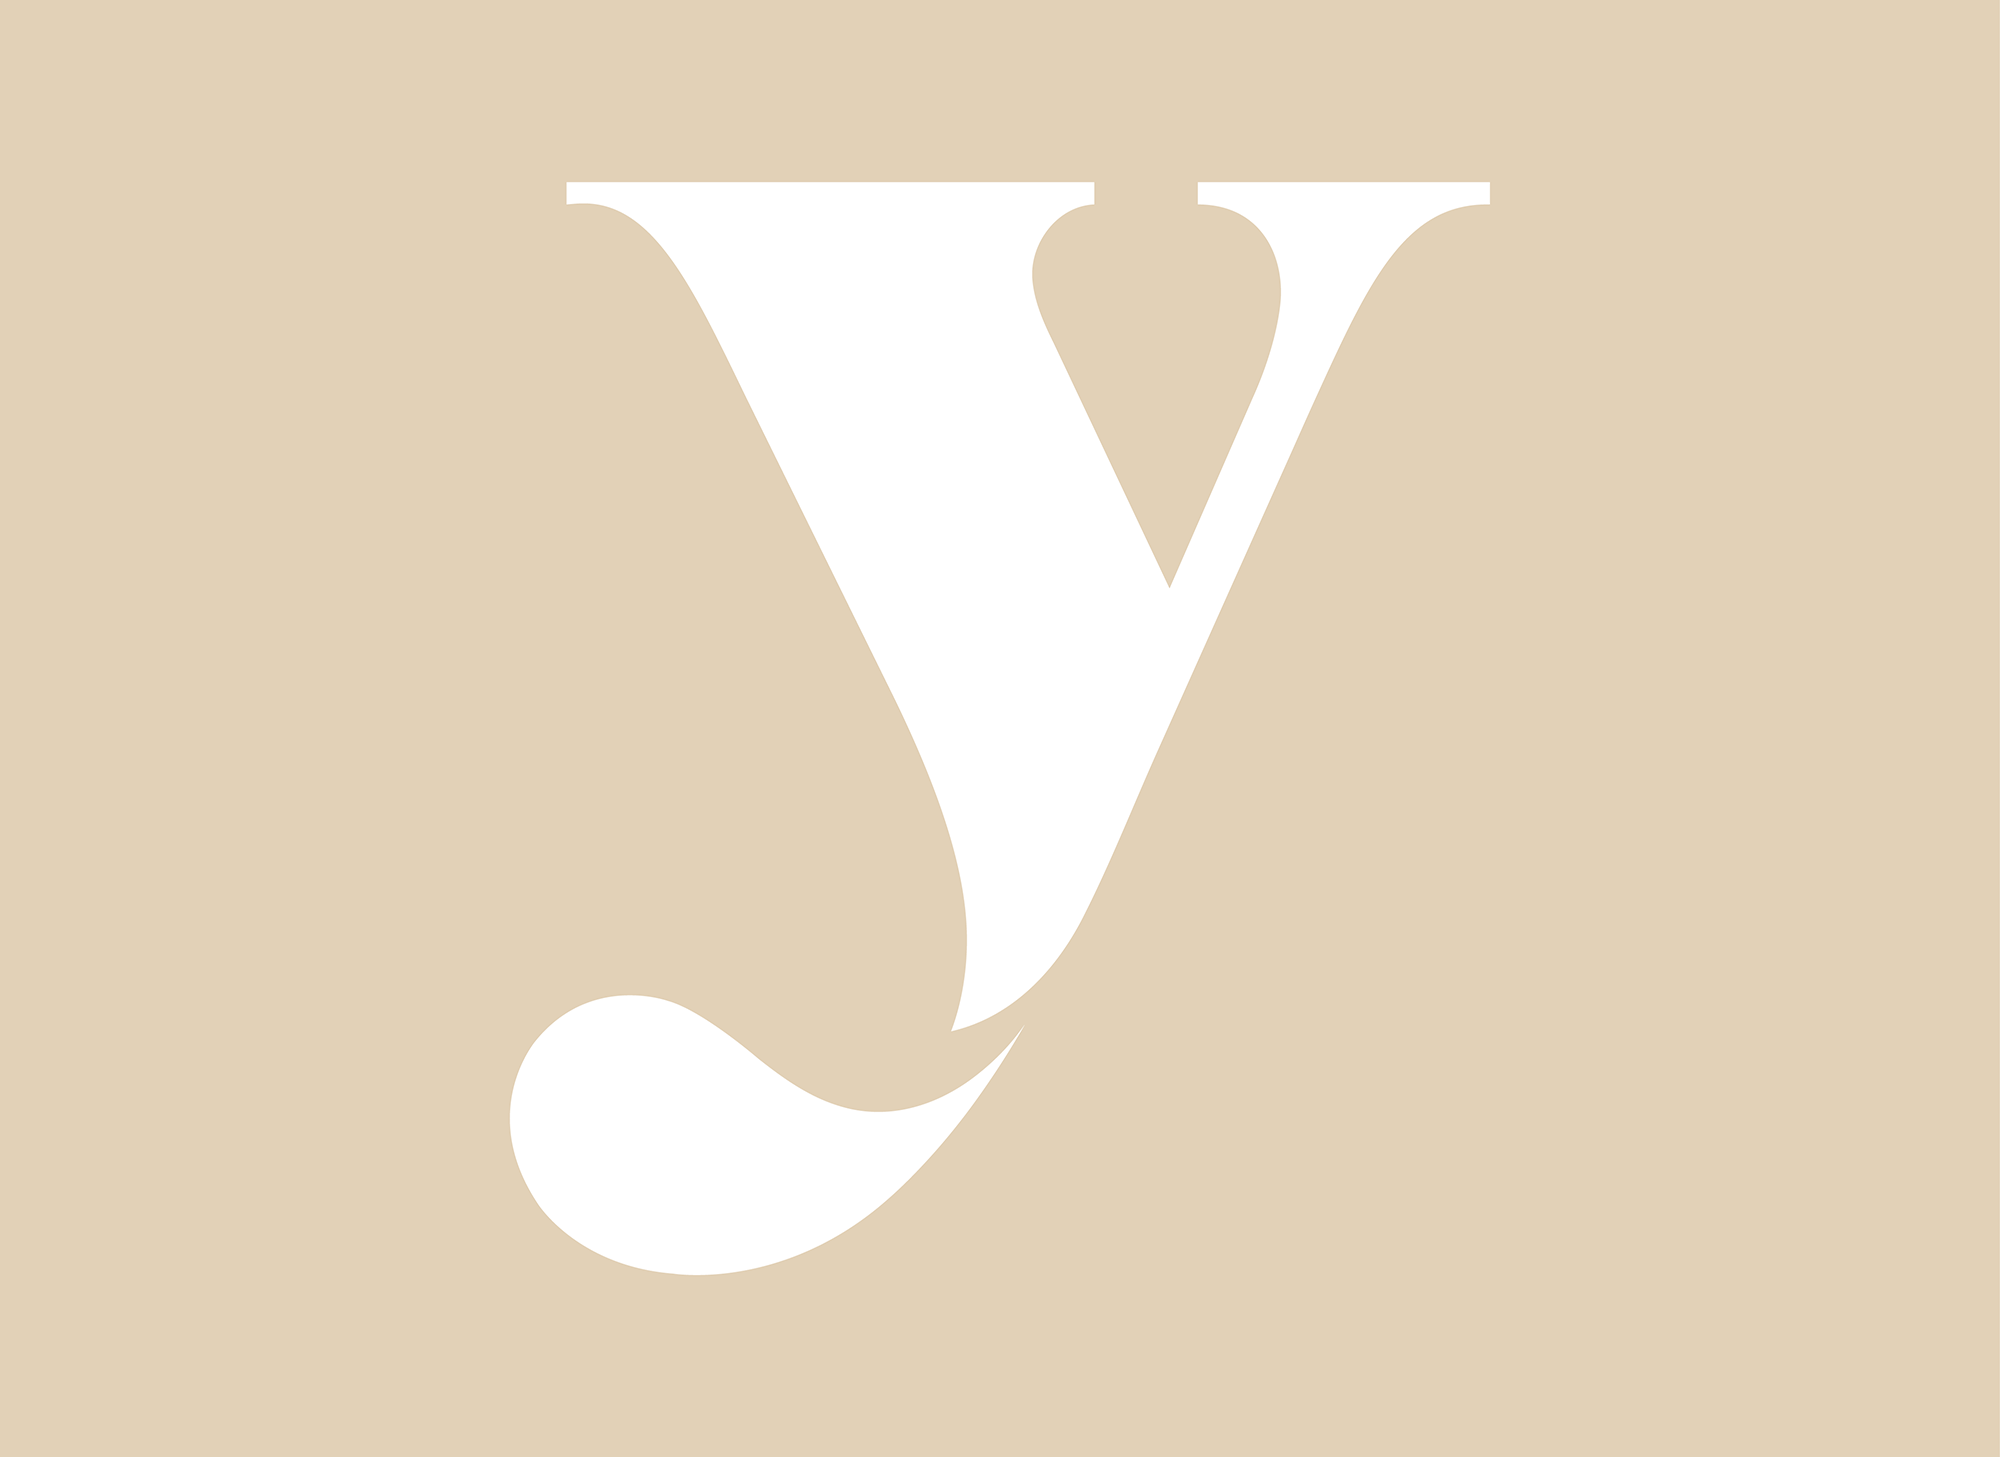 Y from the MYMY logo